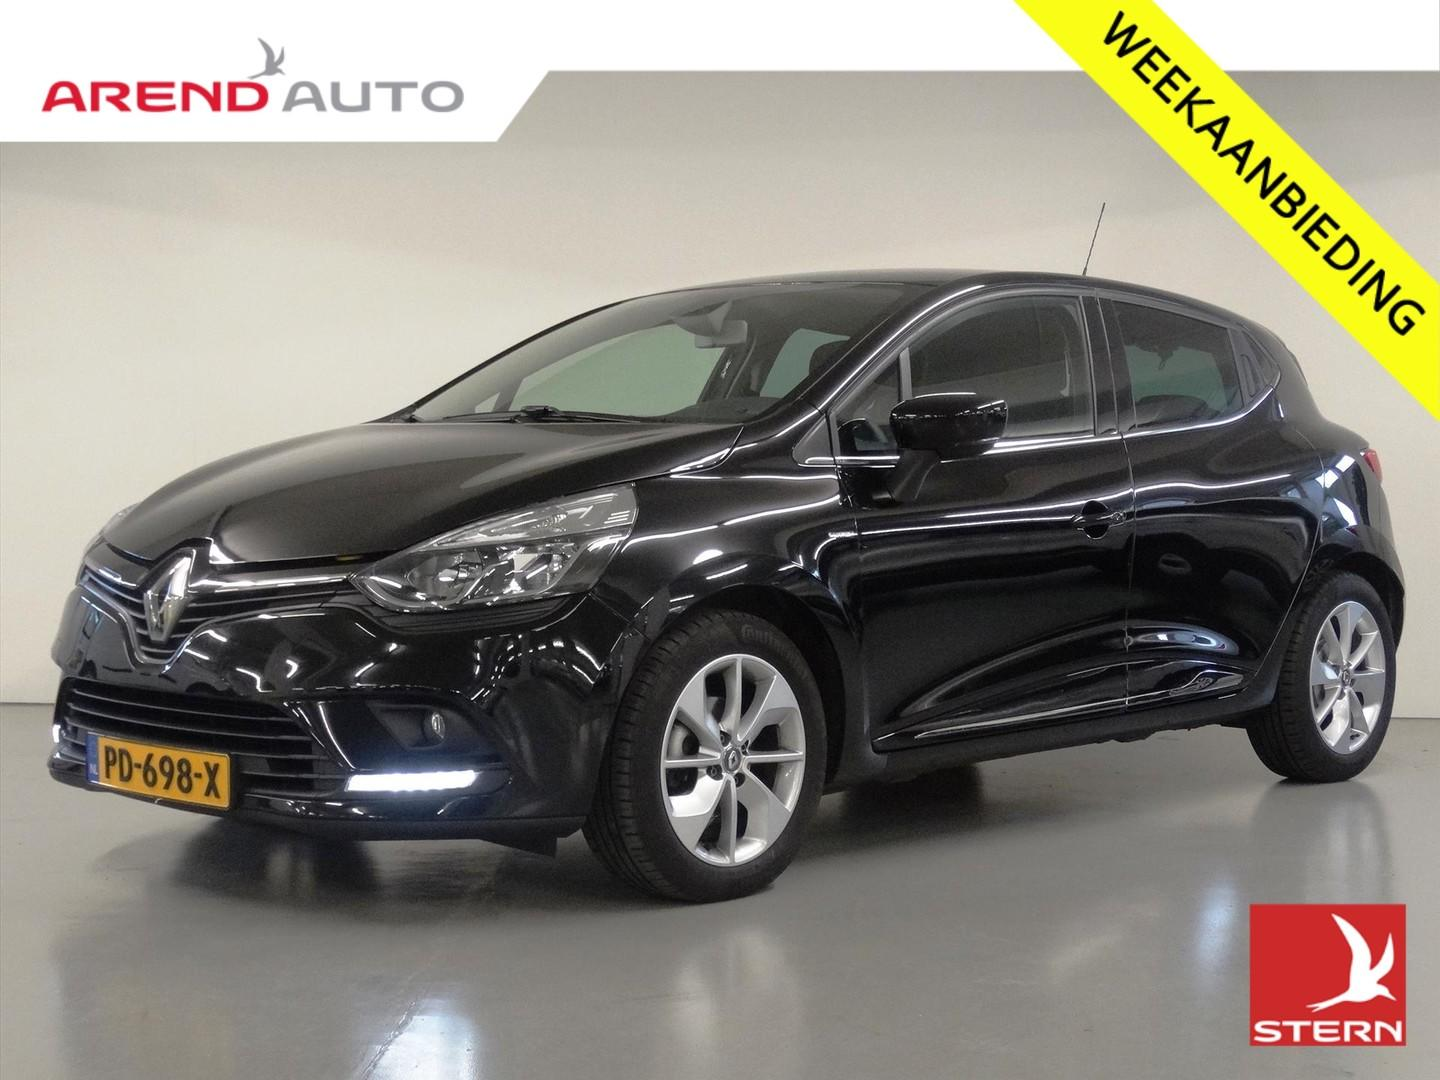 Renault Clio Energy dci 90pk eco2 s&s limited